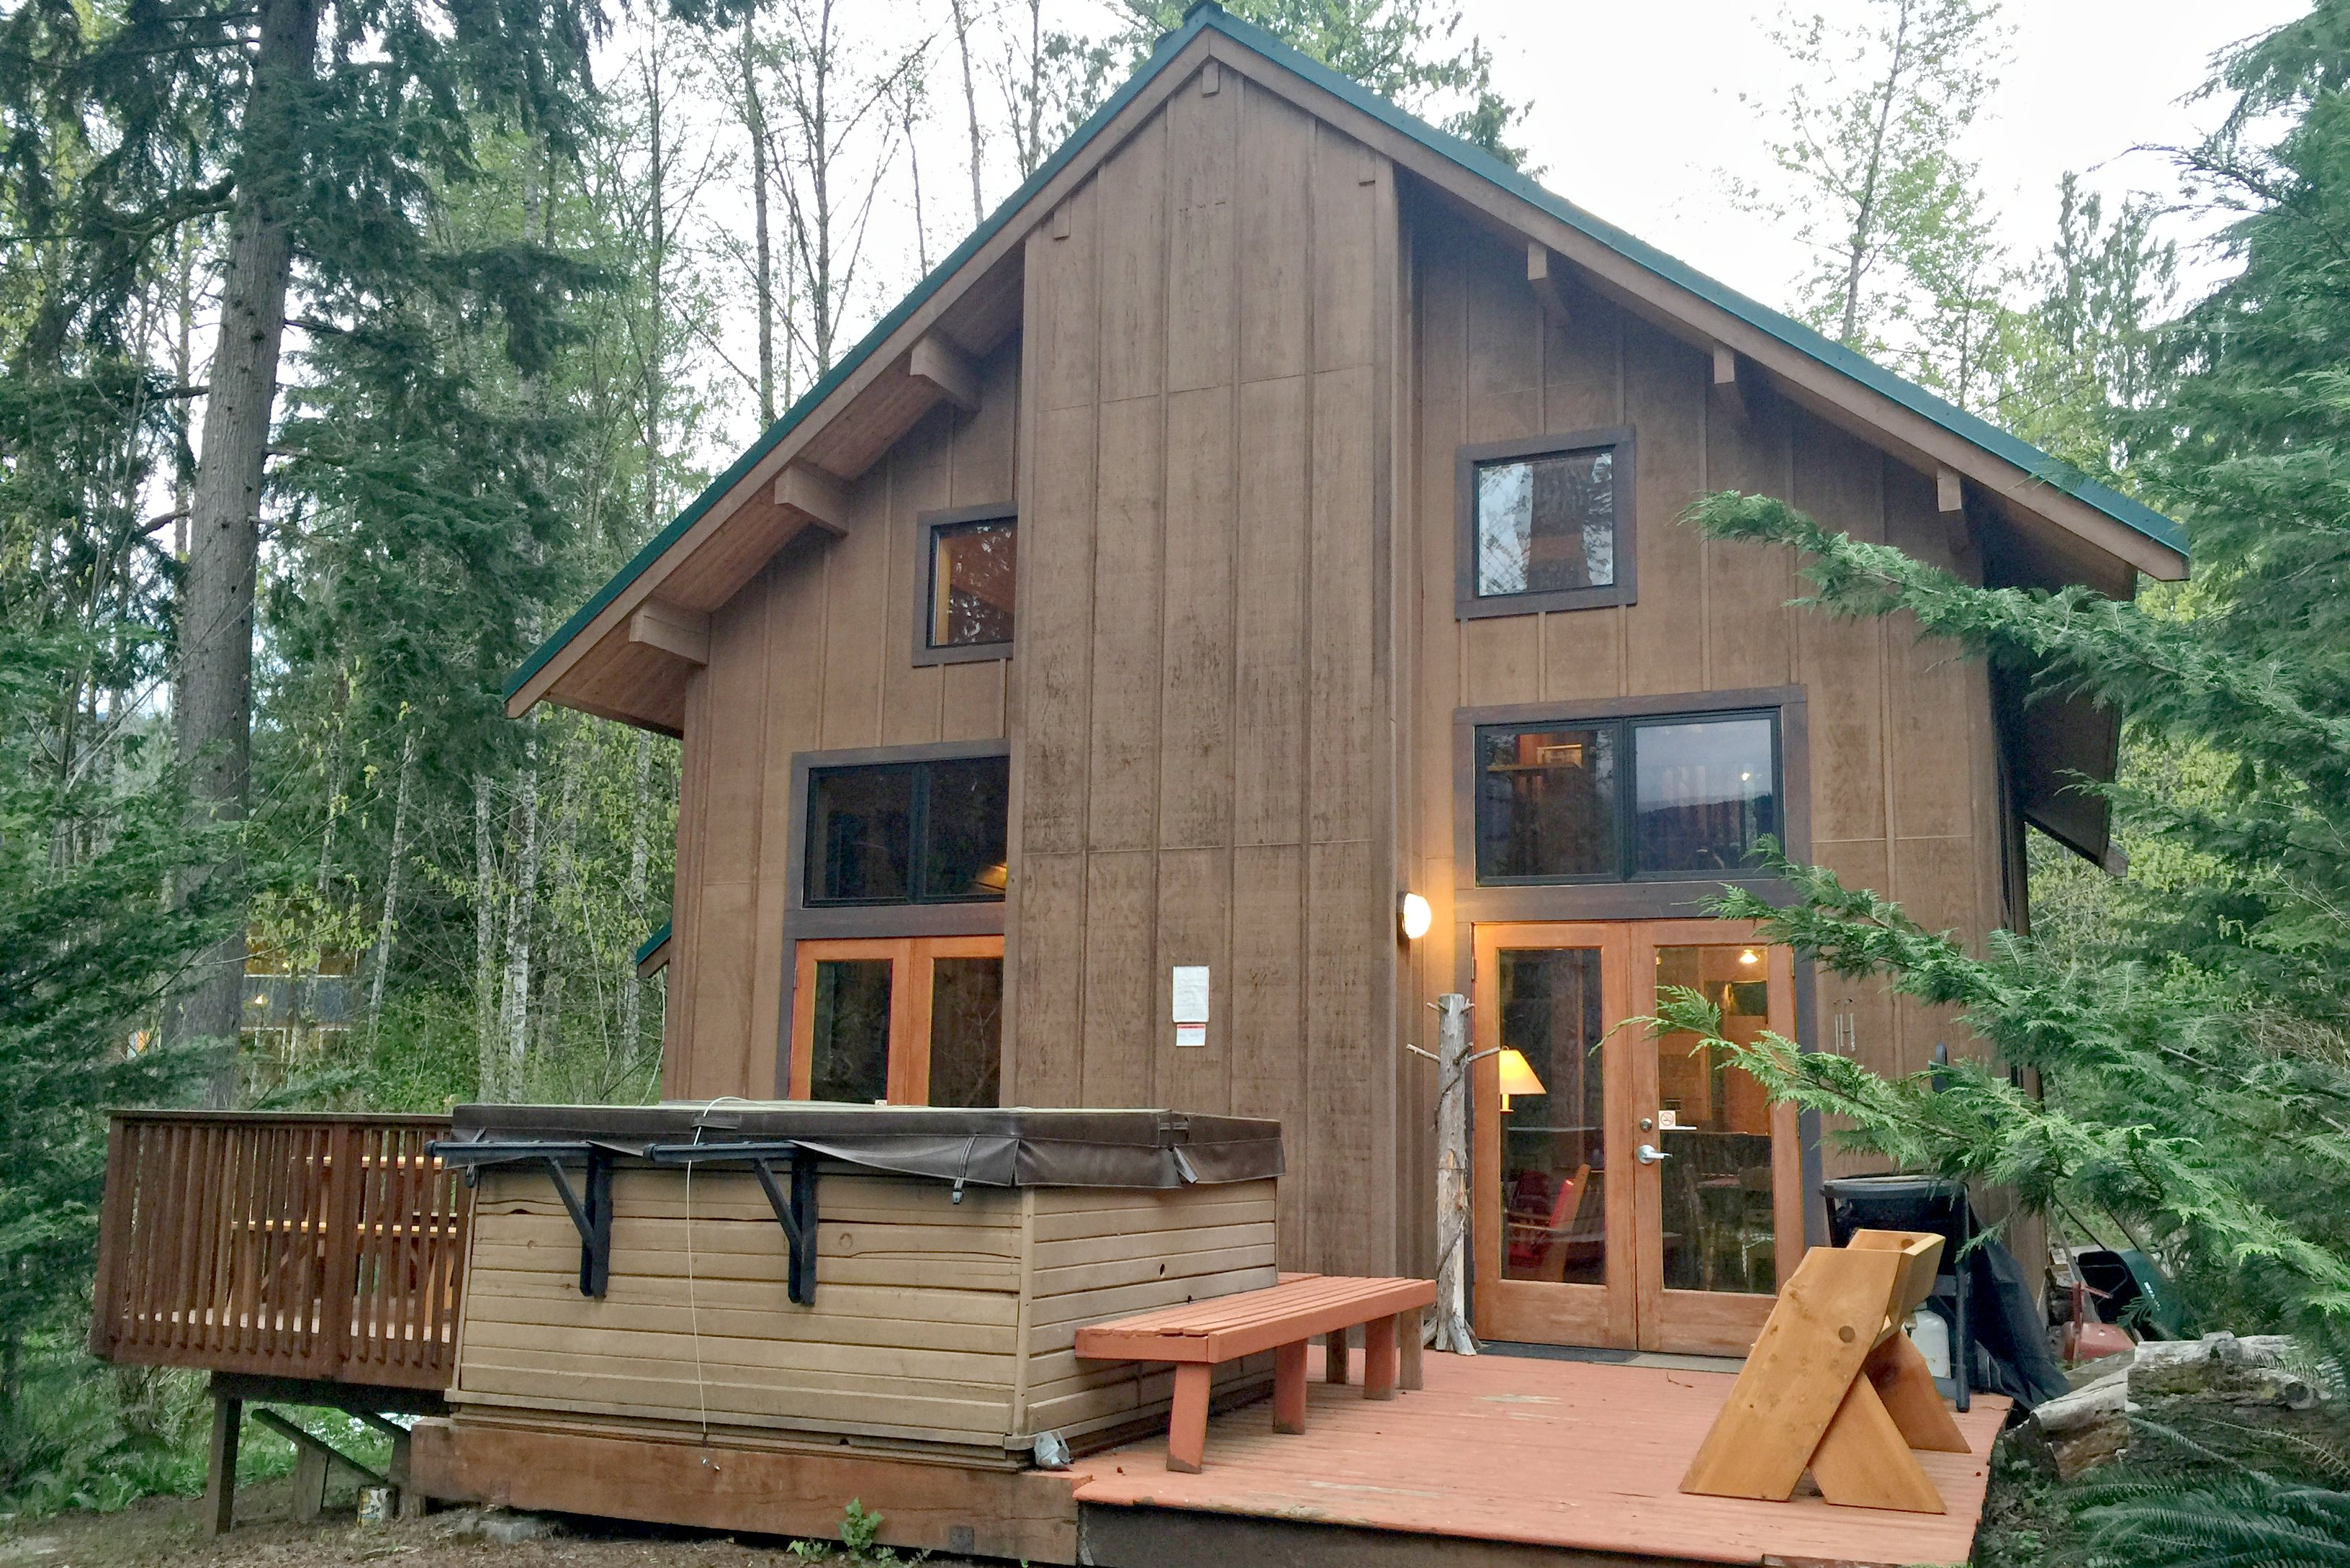 montana original glacier rim mt baker cabin vacation property redawning cabins rentals rental in